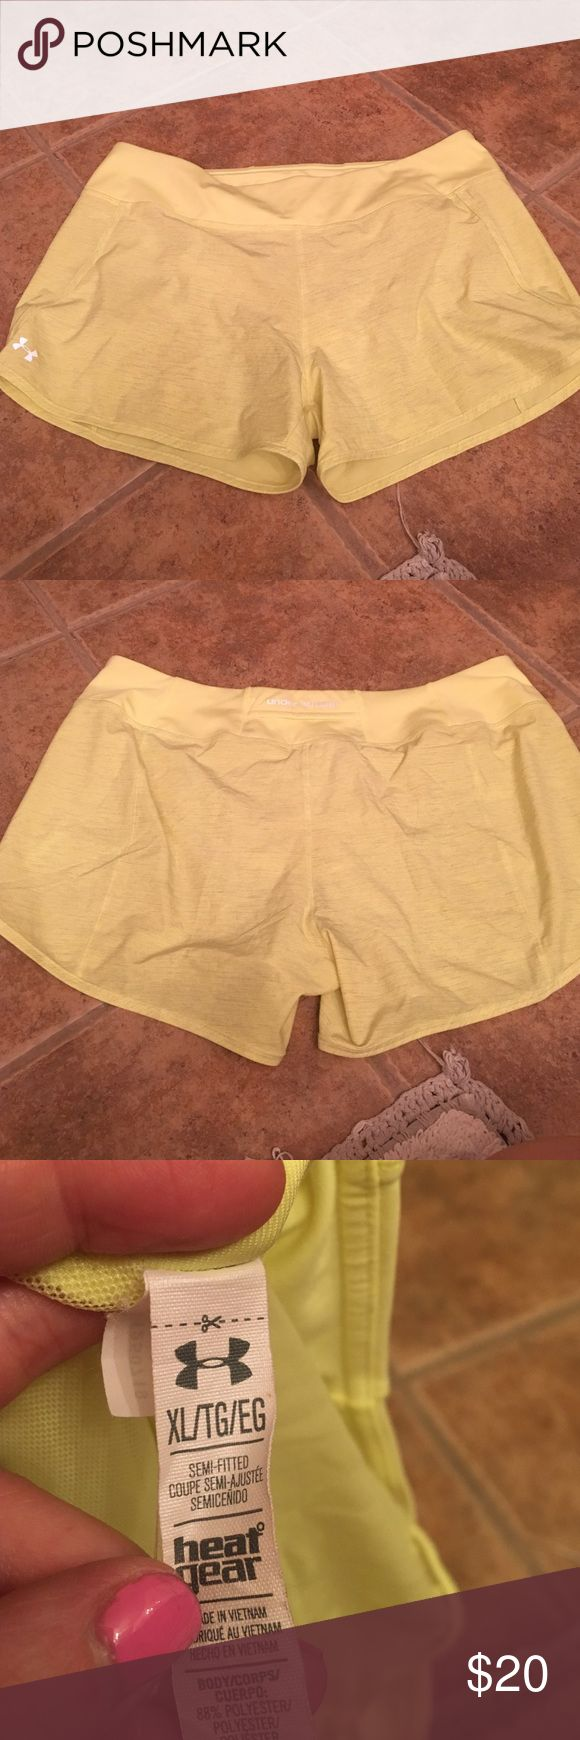 Worn once Neon yellow under armour shorts! Size xl workout running shorts. Literally worn one time, in perfect condition! The lighting doesn't show how neon they are. They are neon yellow and super cute! Under Armour Shorts